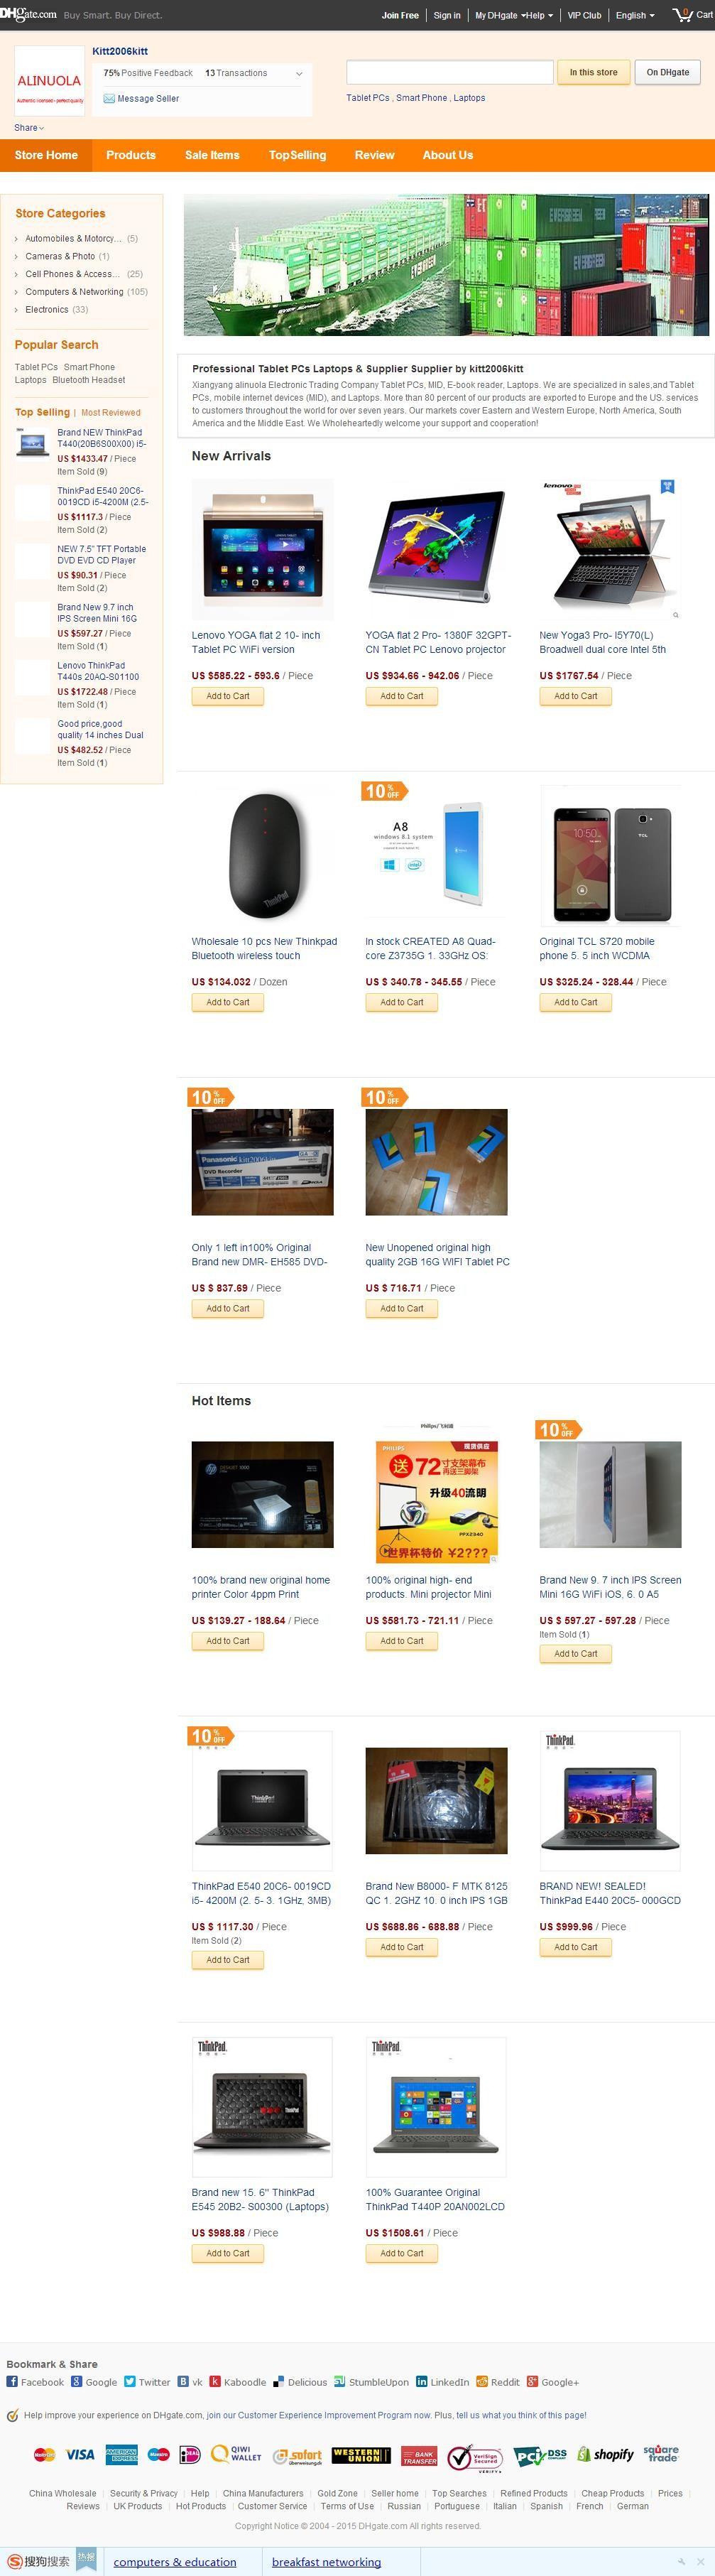 China Computers & Networking Seller _ Chinese Electronics Store from Kitt2006kitt _ DHgate